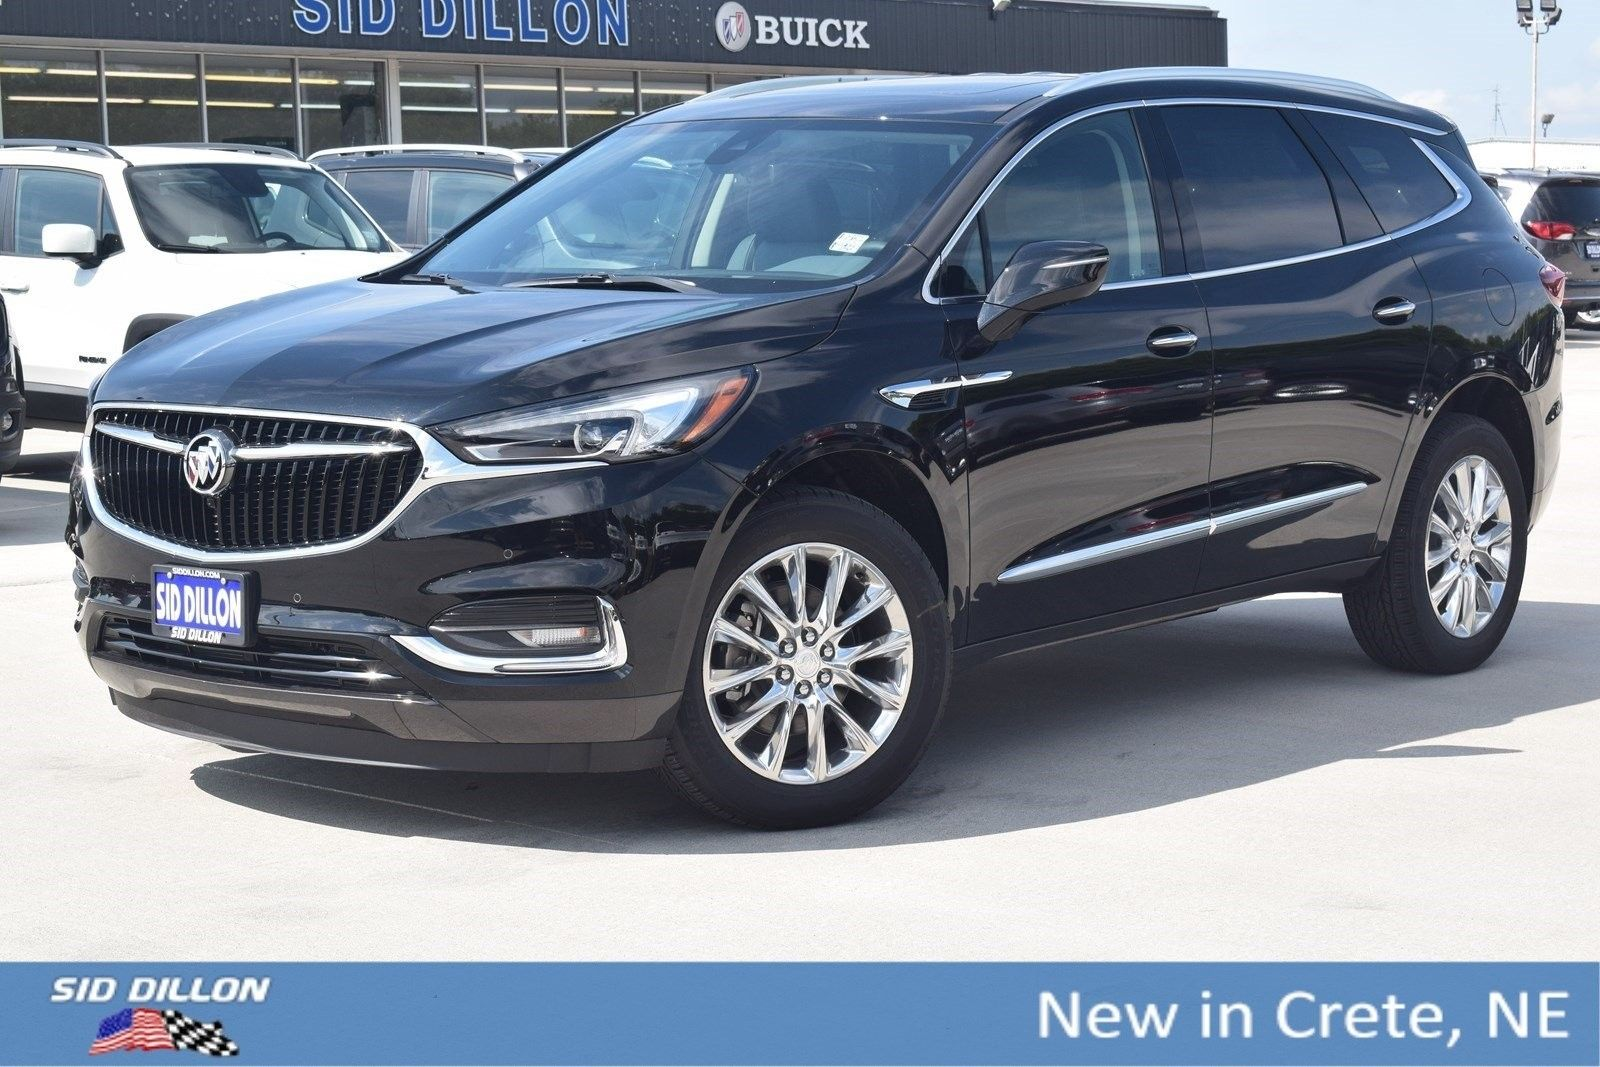 2019 Buick Enclave Overview And Price Buick Enclave Buick Envision Buick